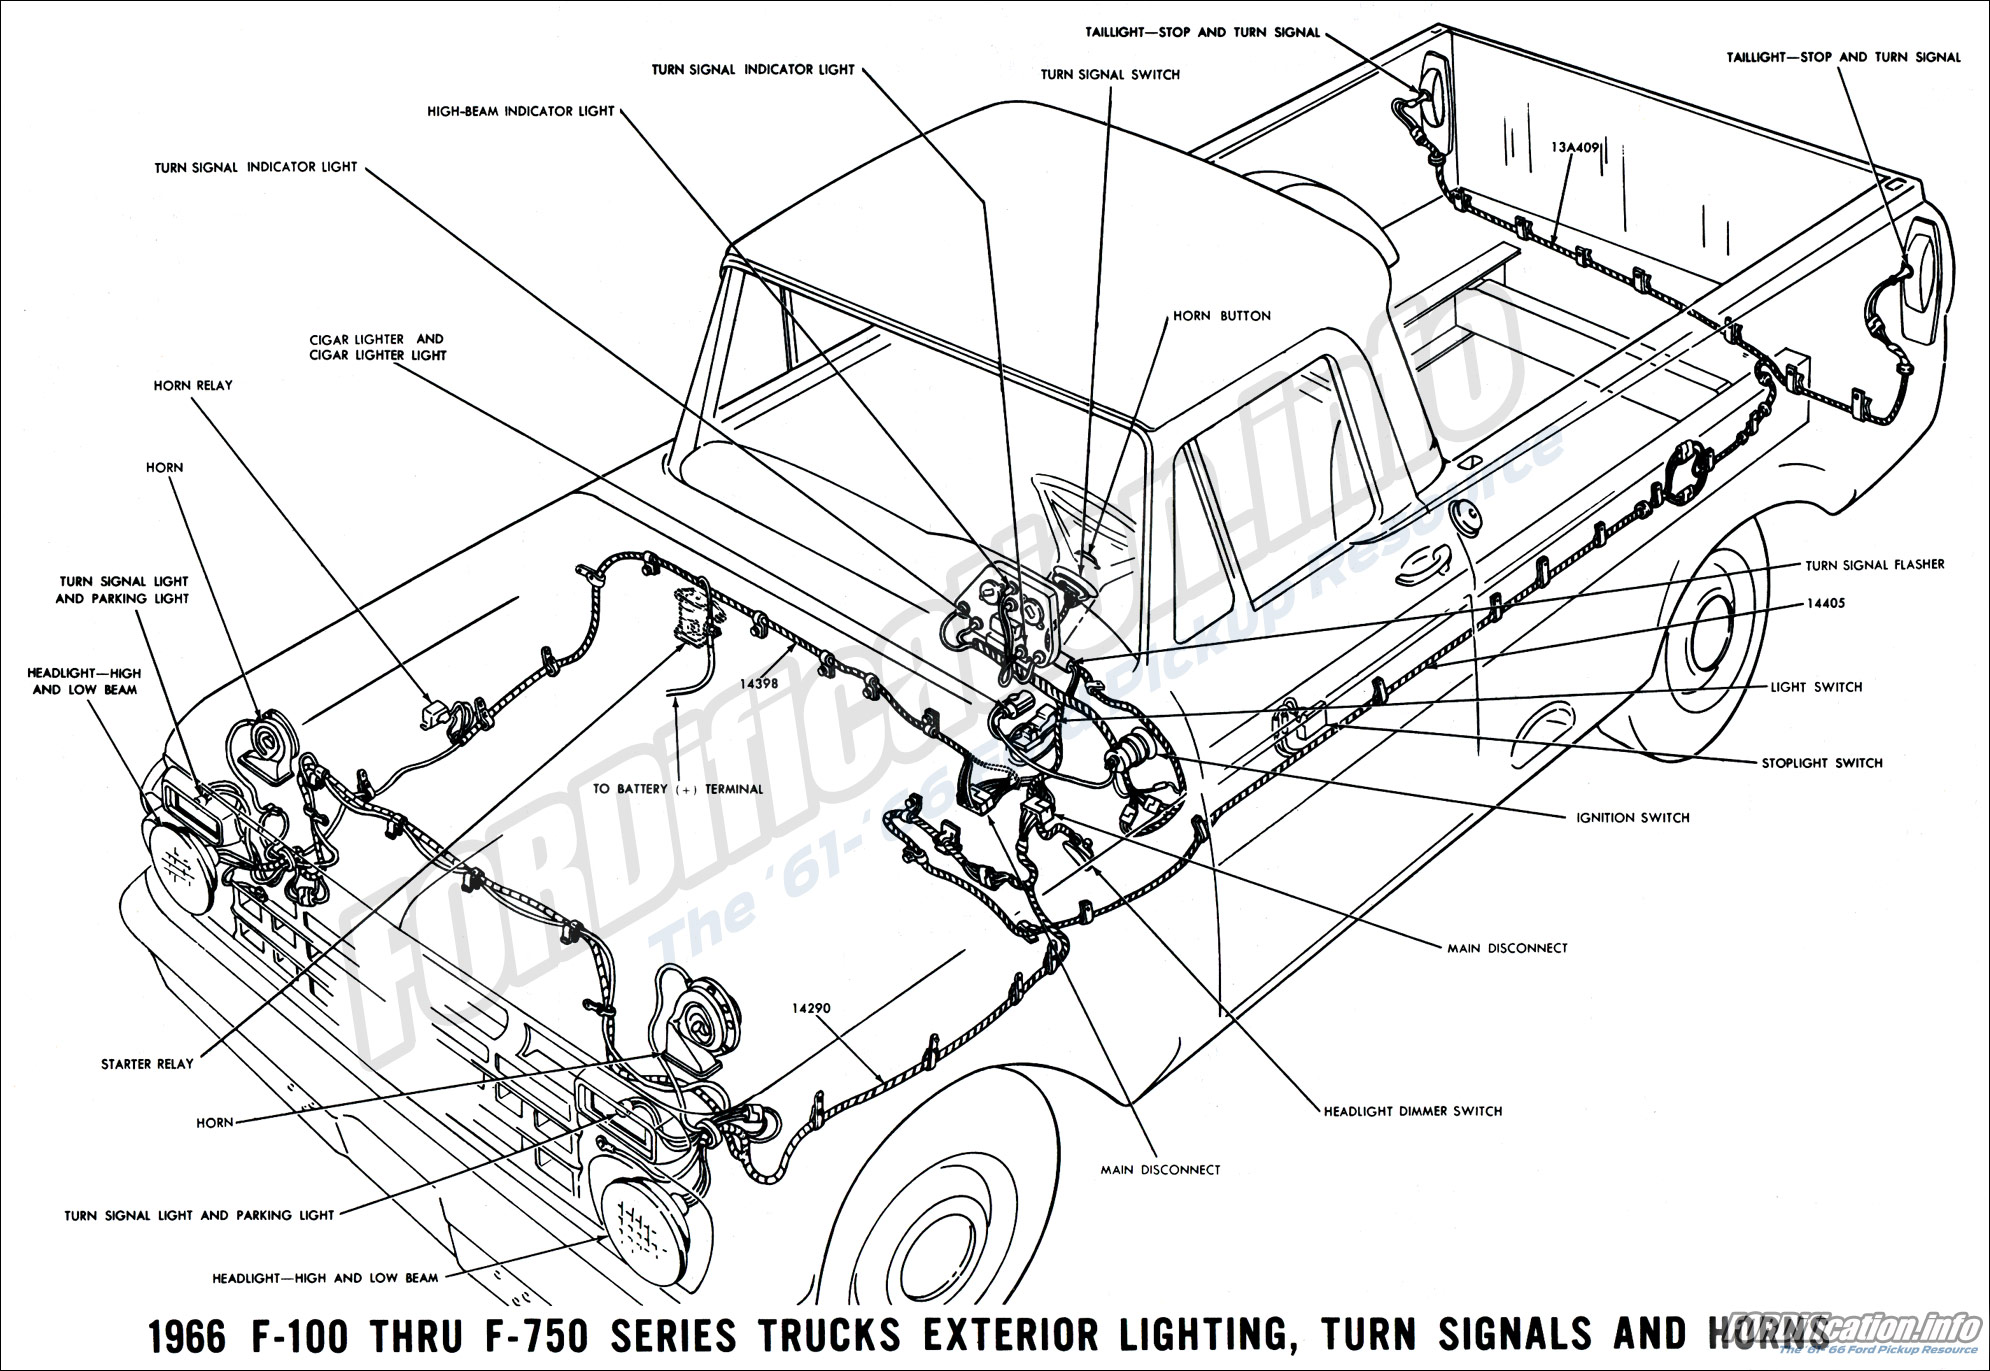 1966 Ford Truck Wiring Diagrams FORDificationinfo The 6166